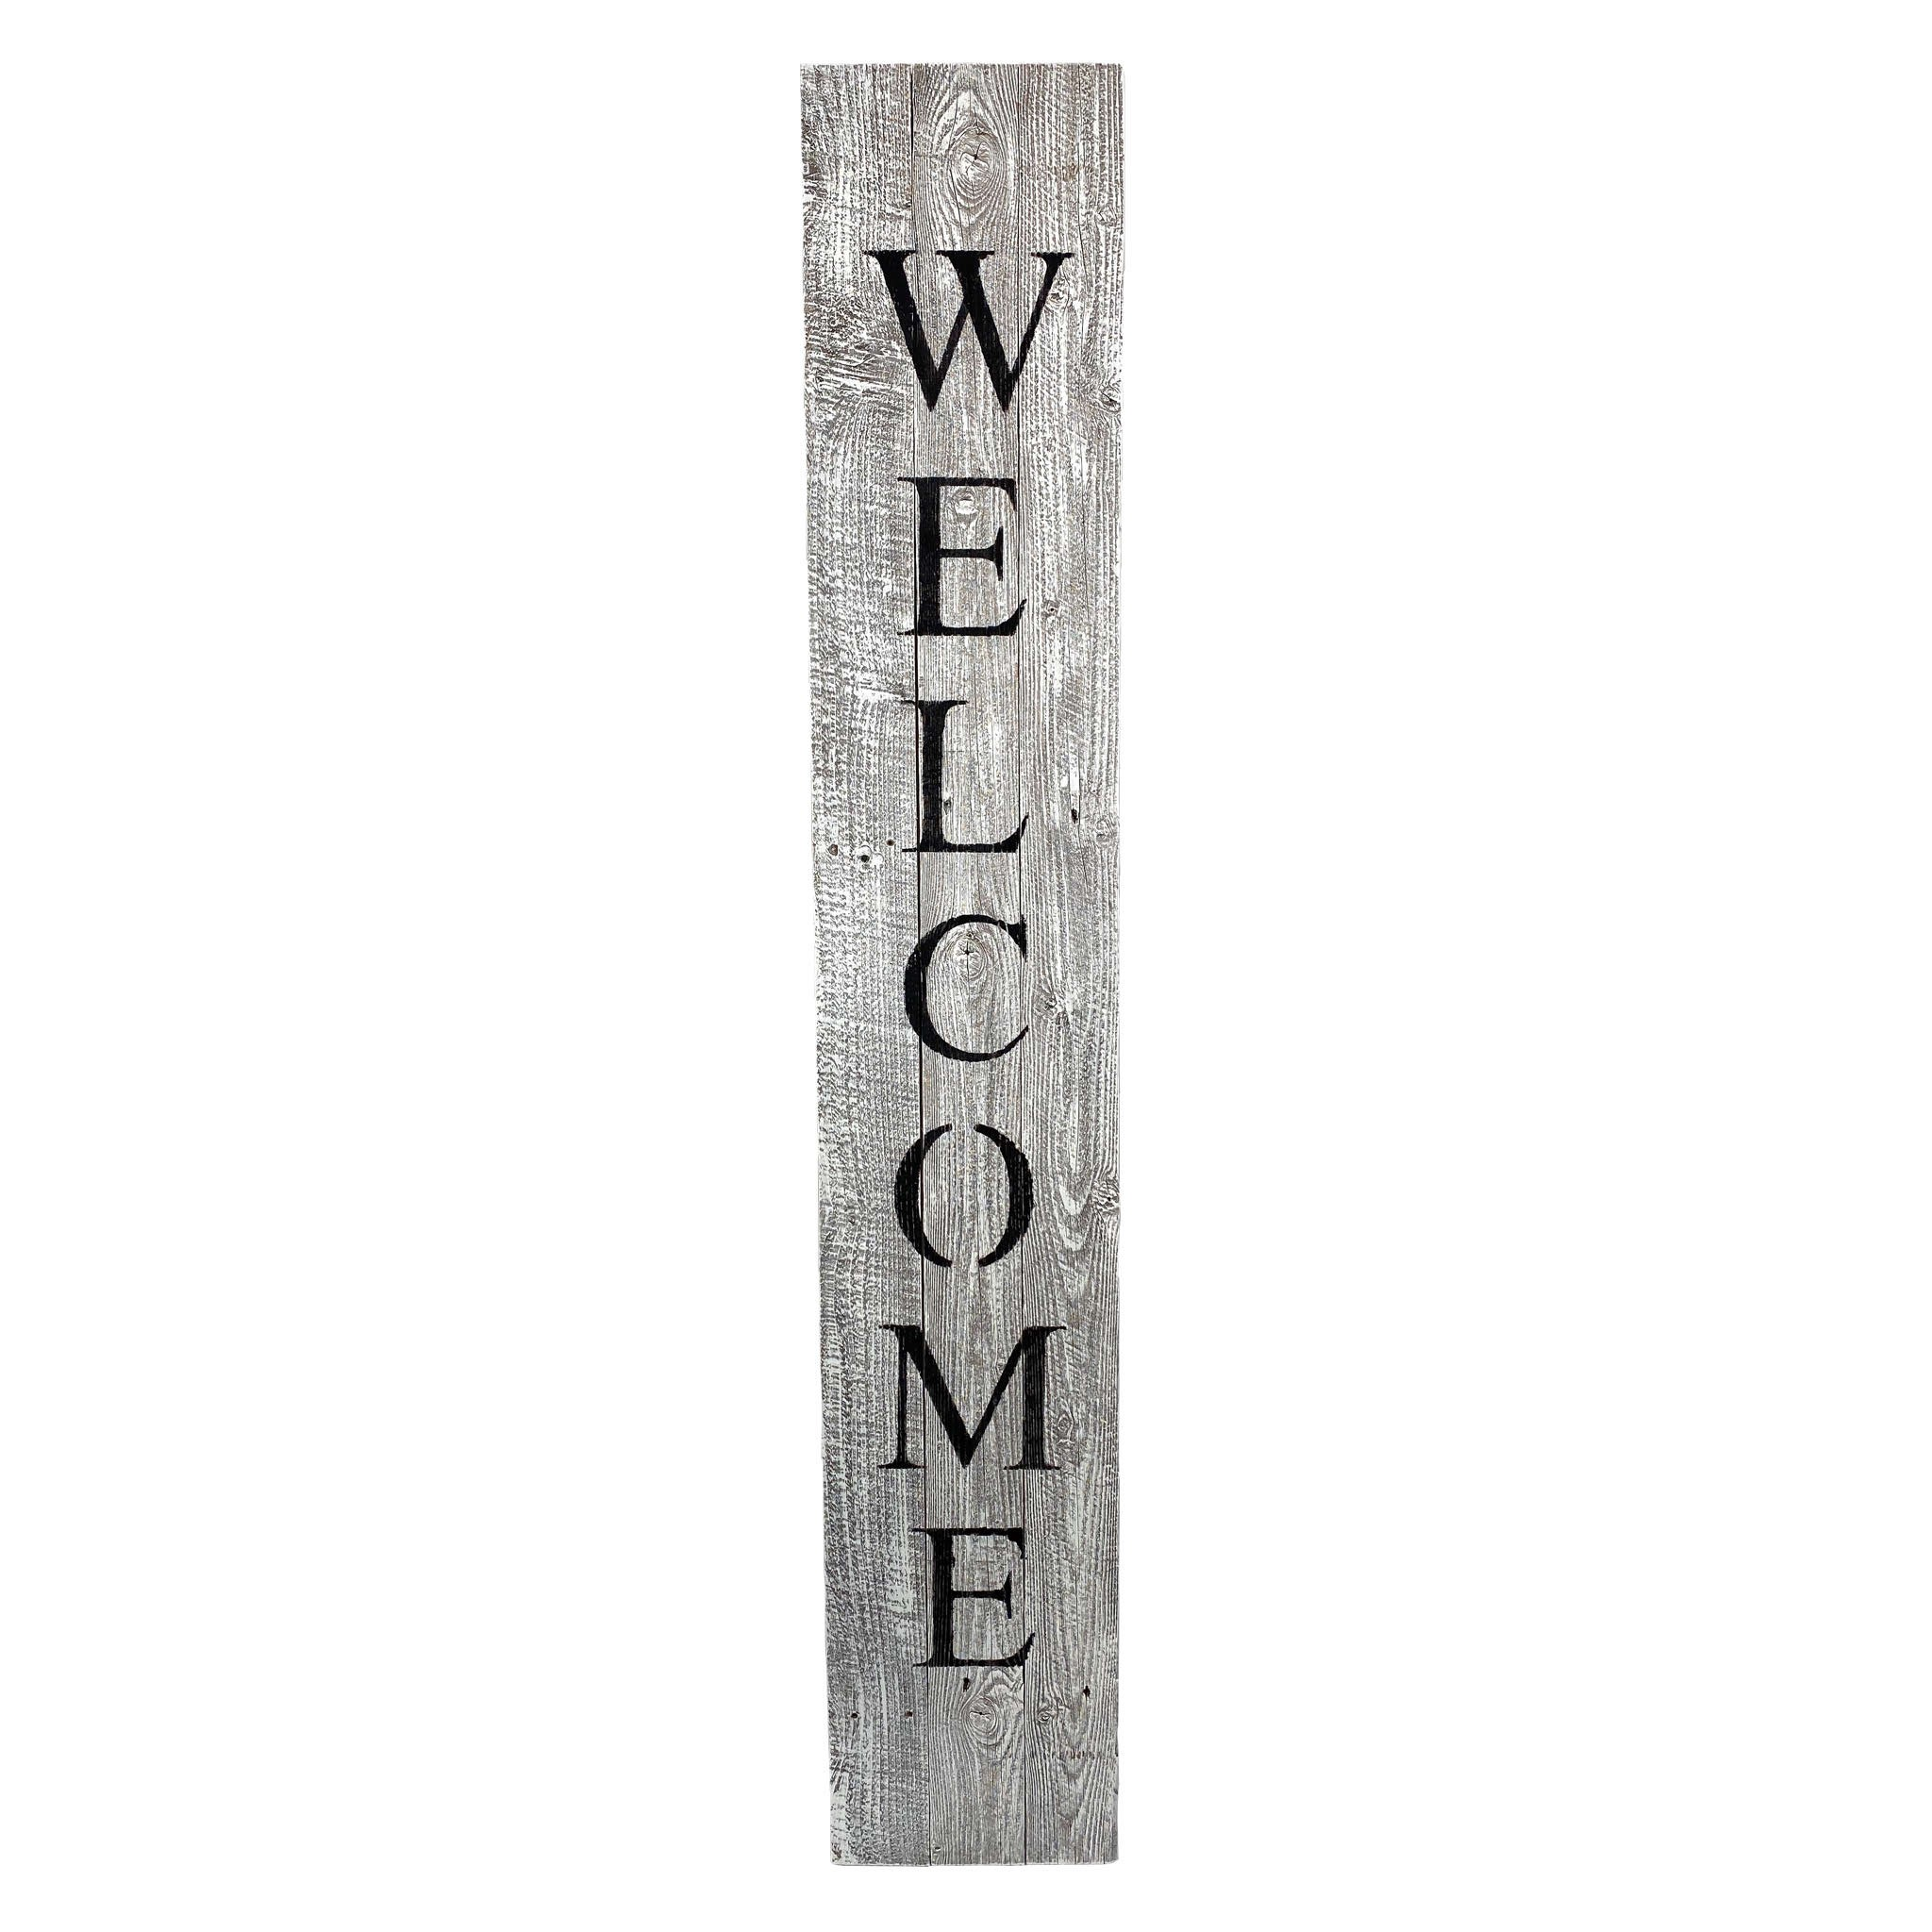 Rustic White Wash Front Porch Welcome Sign